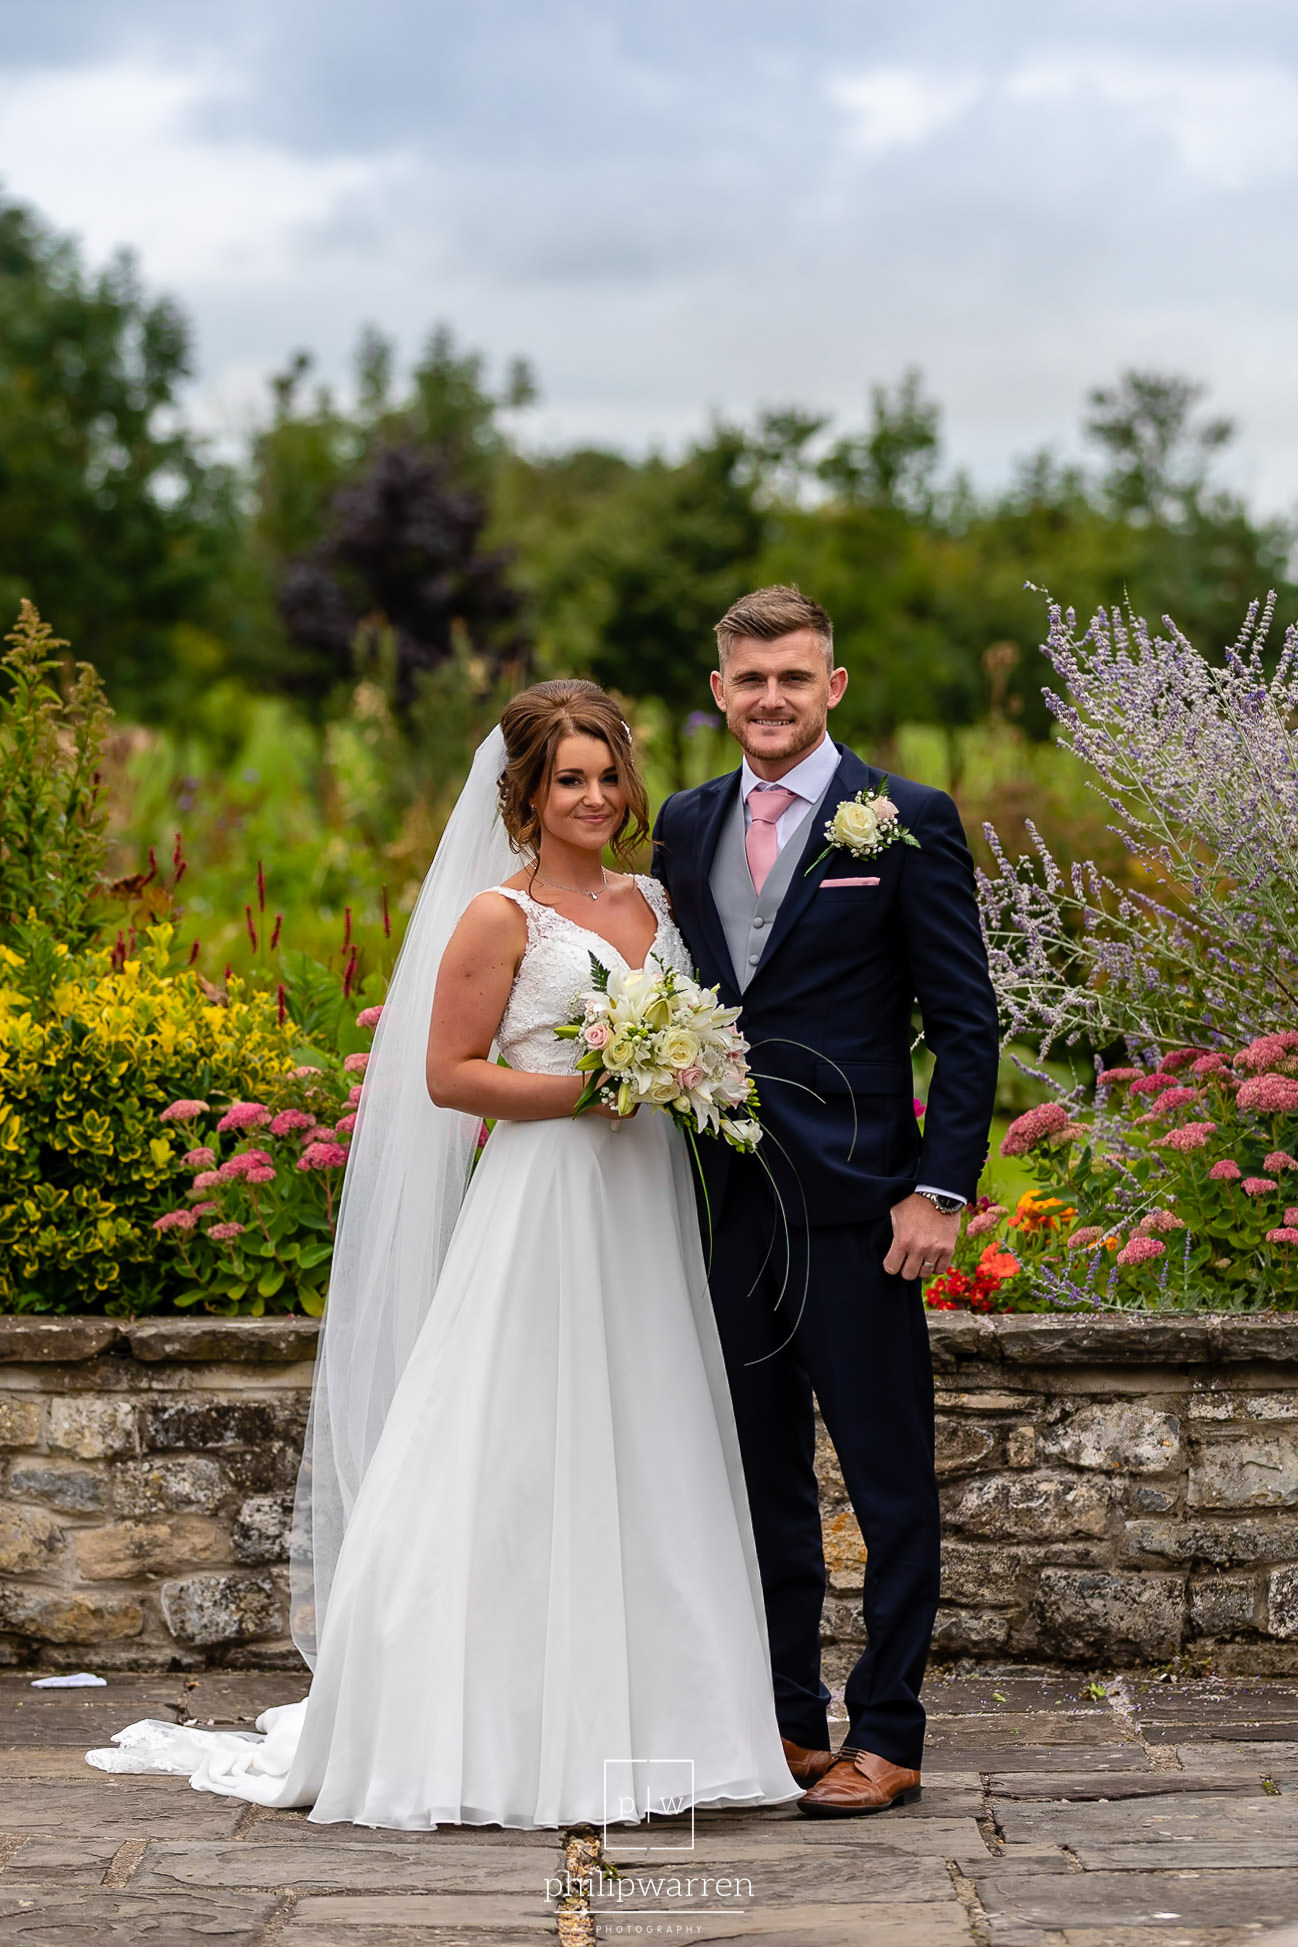 wedding photo of bride and groom at cottrell park wedding